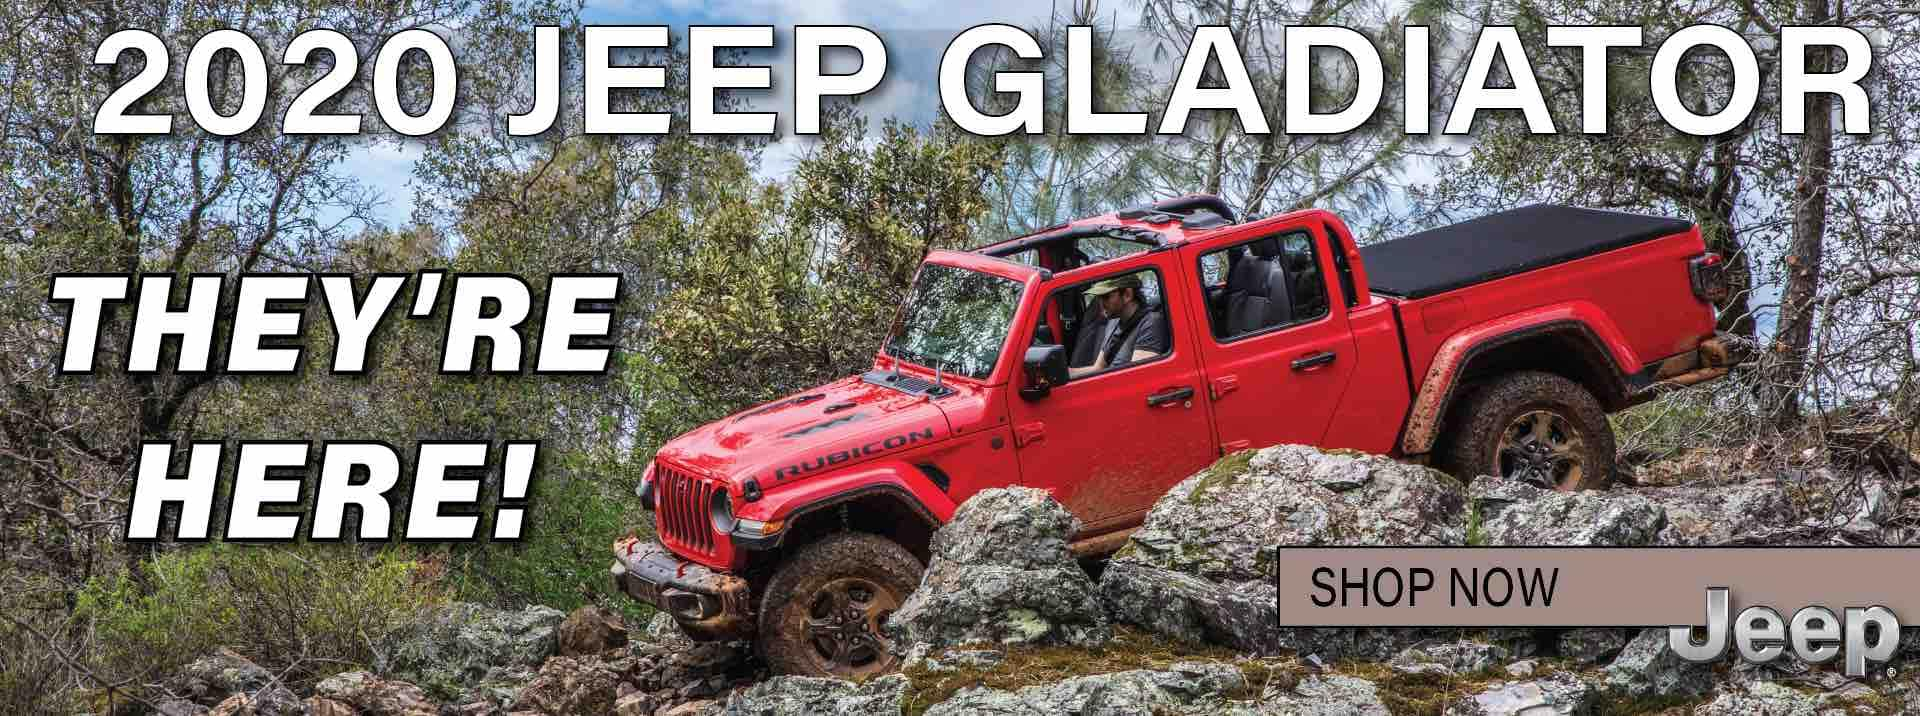 2020 Jeep Gladiator navigating down a rocky mountain